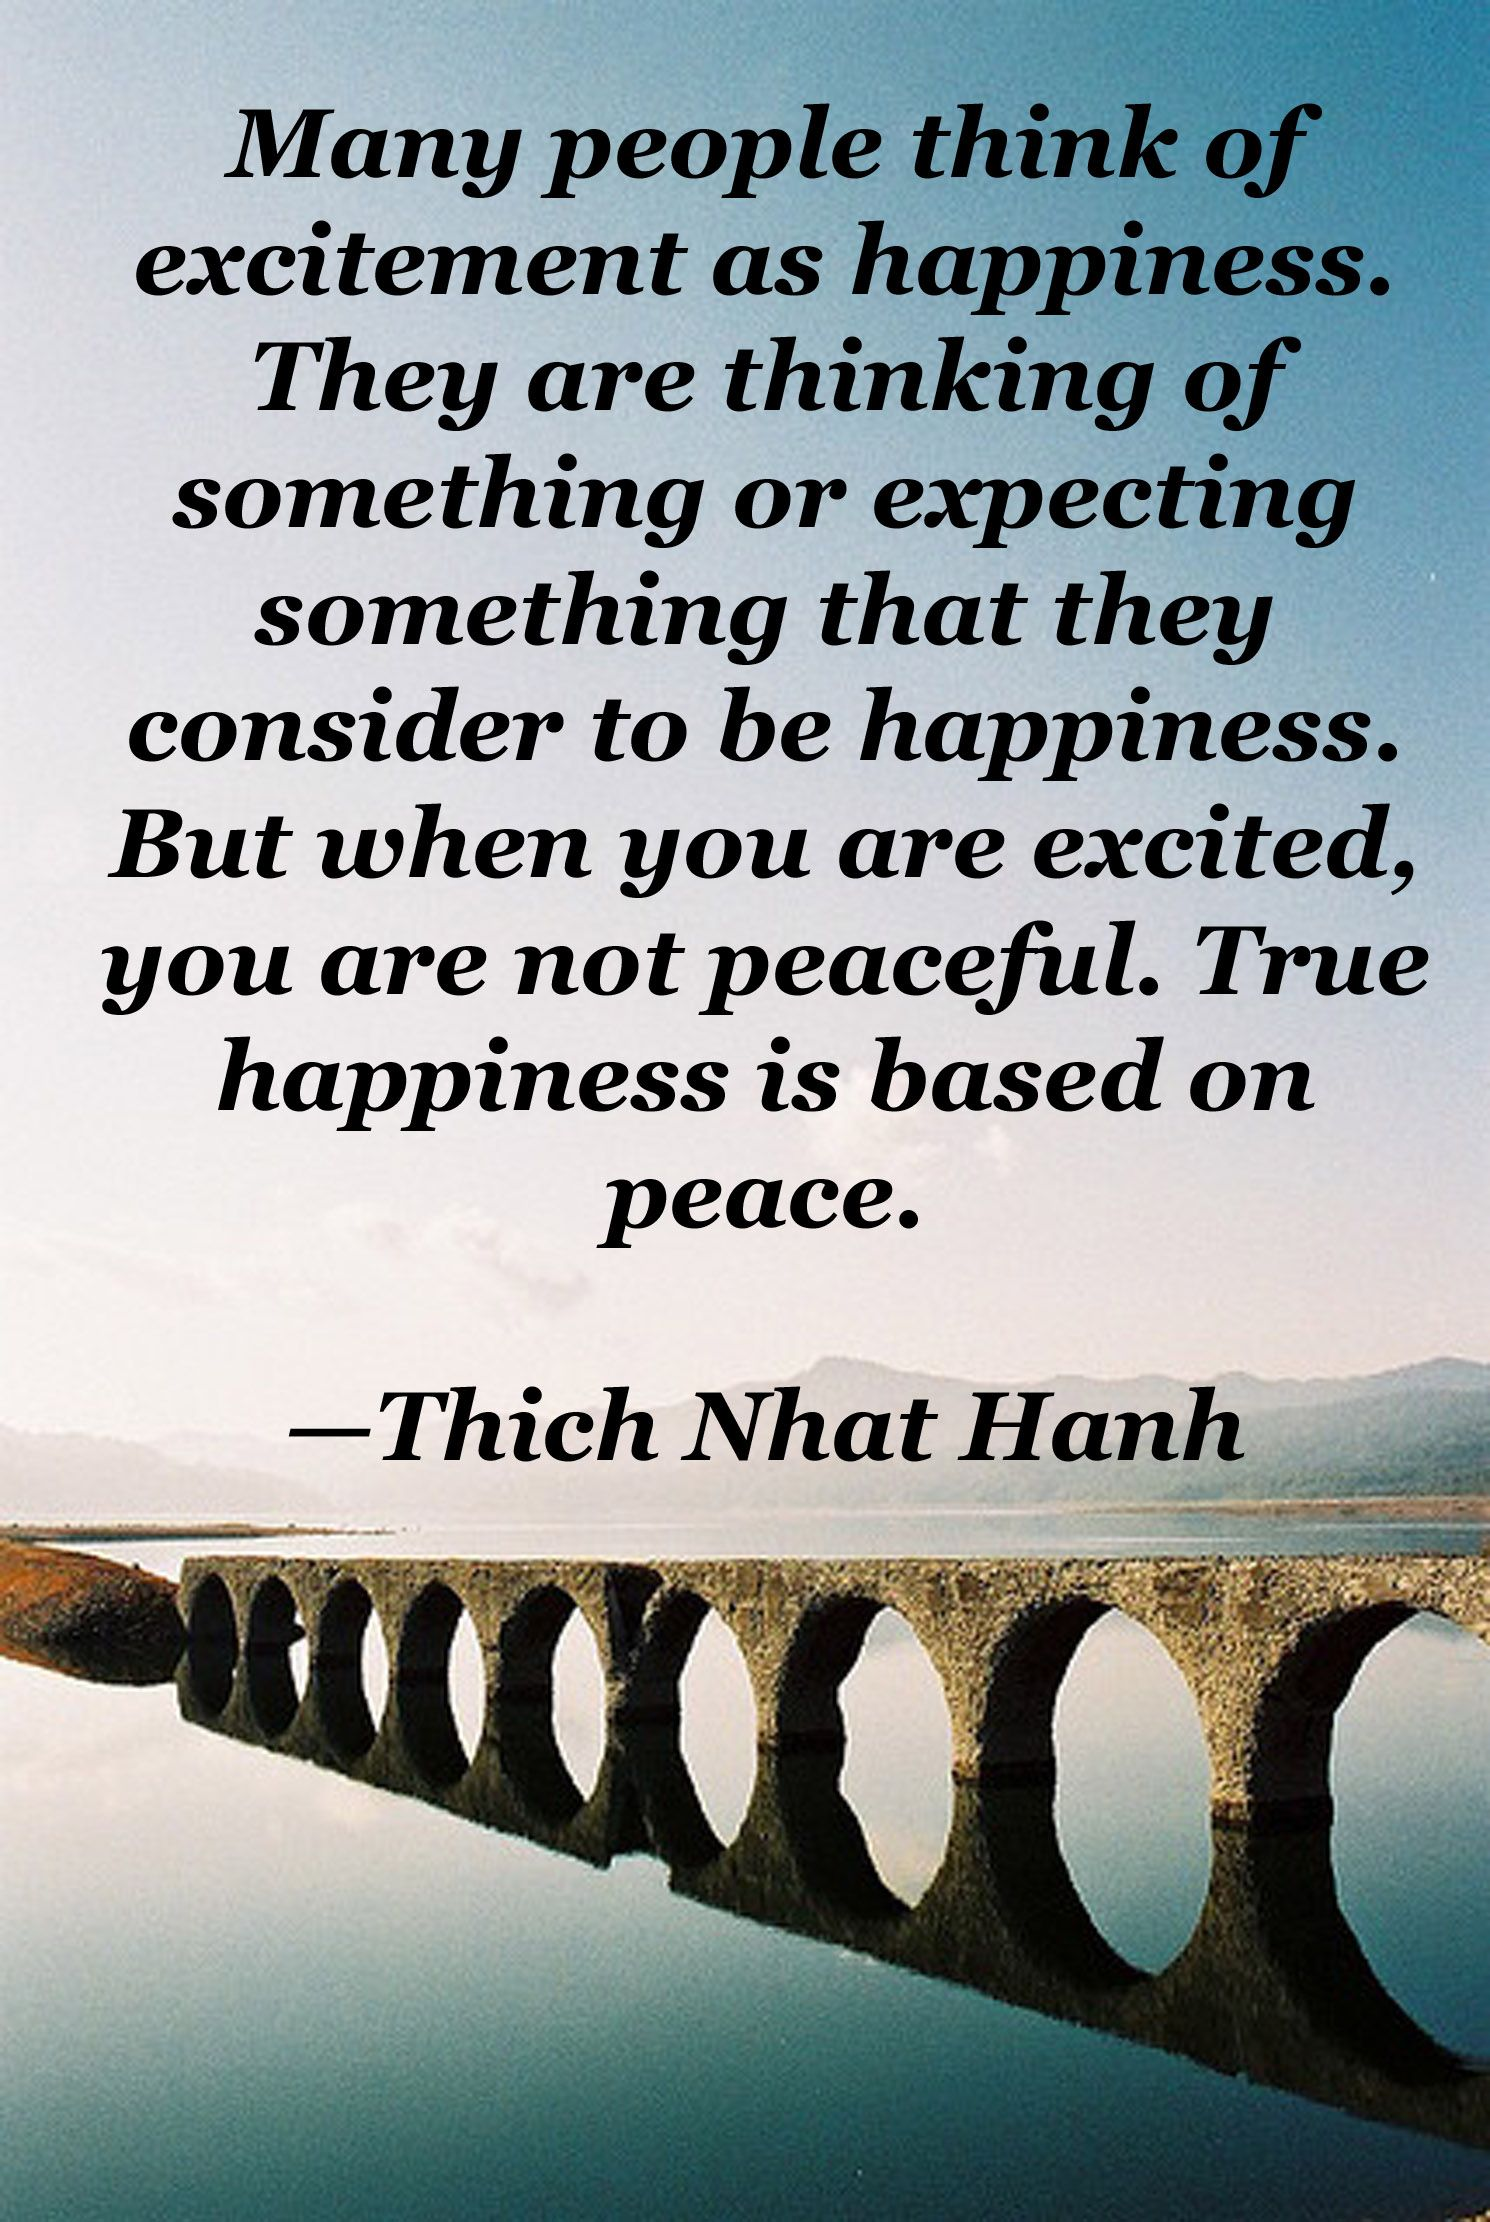 True Happiness Is Based On Peace Buddhist Quotes Thich Nhat Hanh Quotes Words